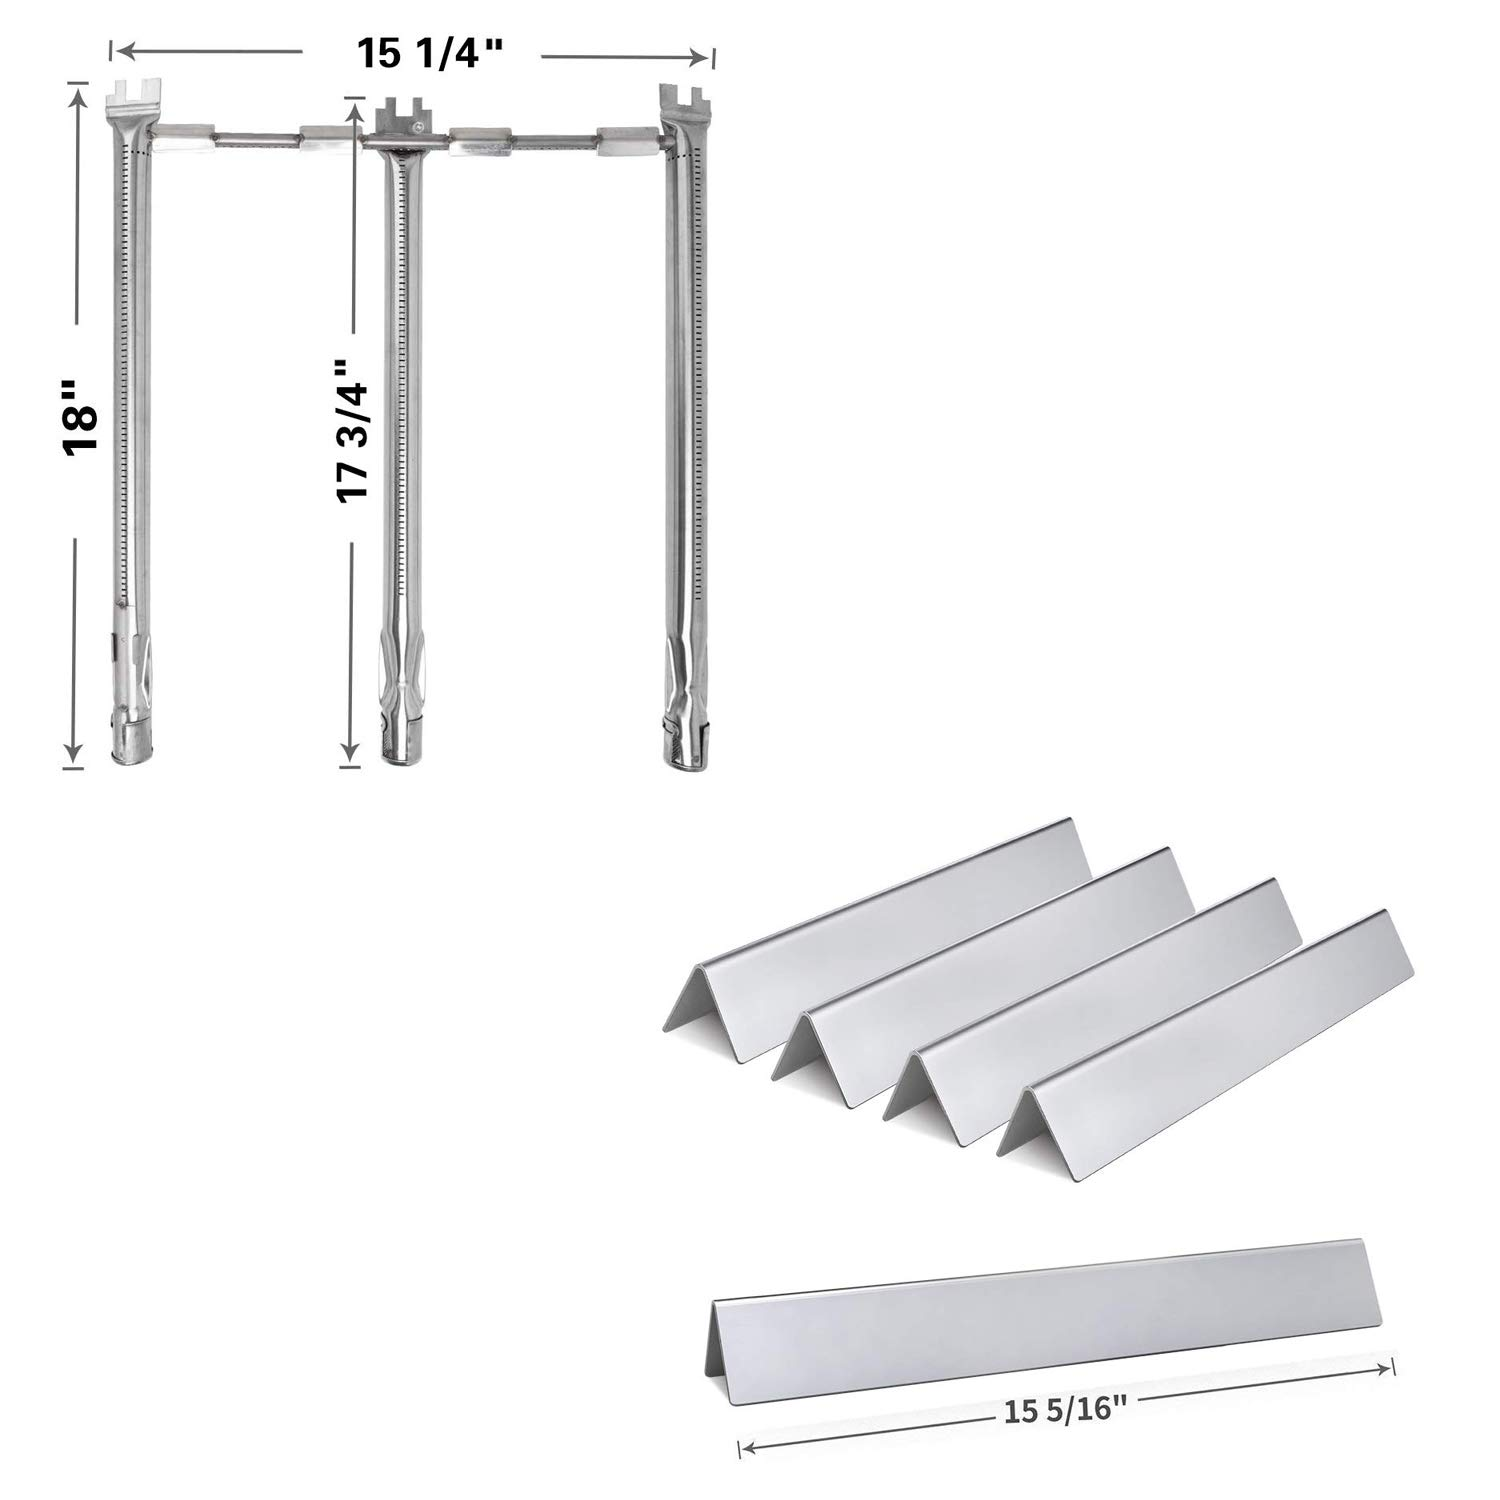 Htanch SG636 (5-Pack) SF9787 for Weber Spirit E310, E320, S310 and S320 (2013-2017) Stainless Steel 5 Flavorizer Bars and One Tube Burner by Htanch